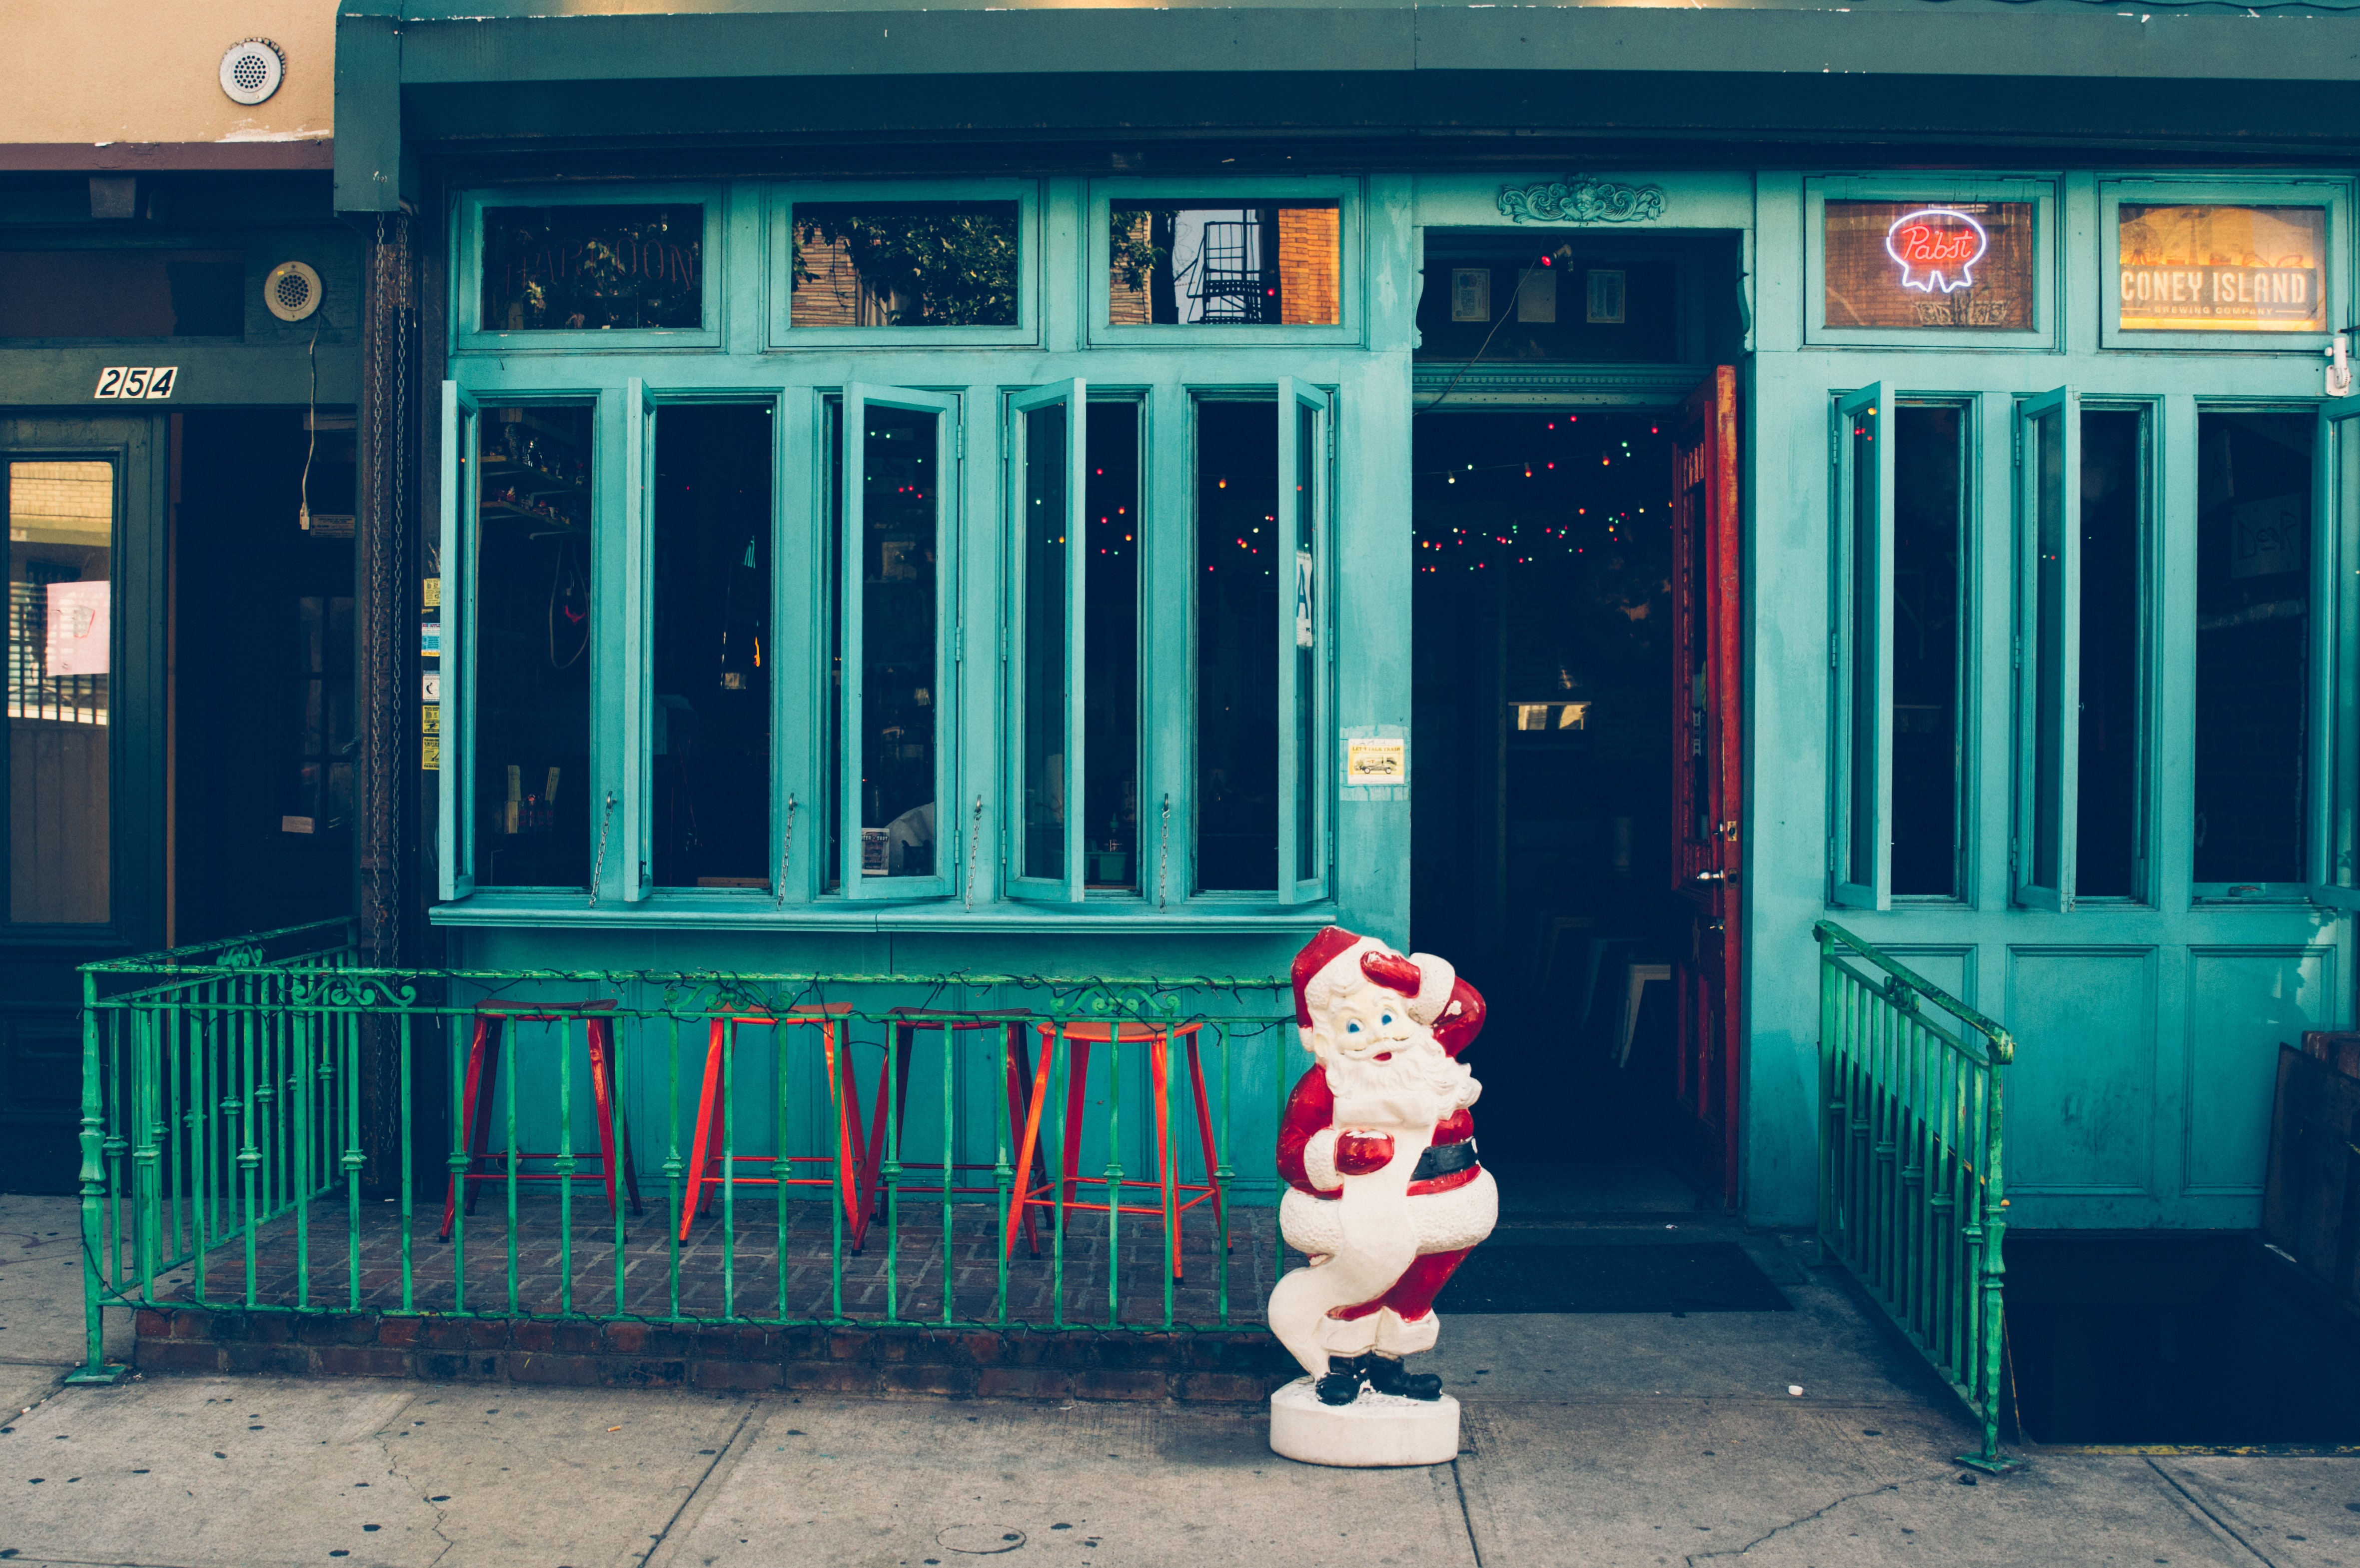 Santa Claus statuette standing outside beside the door